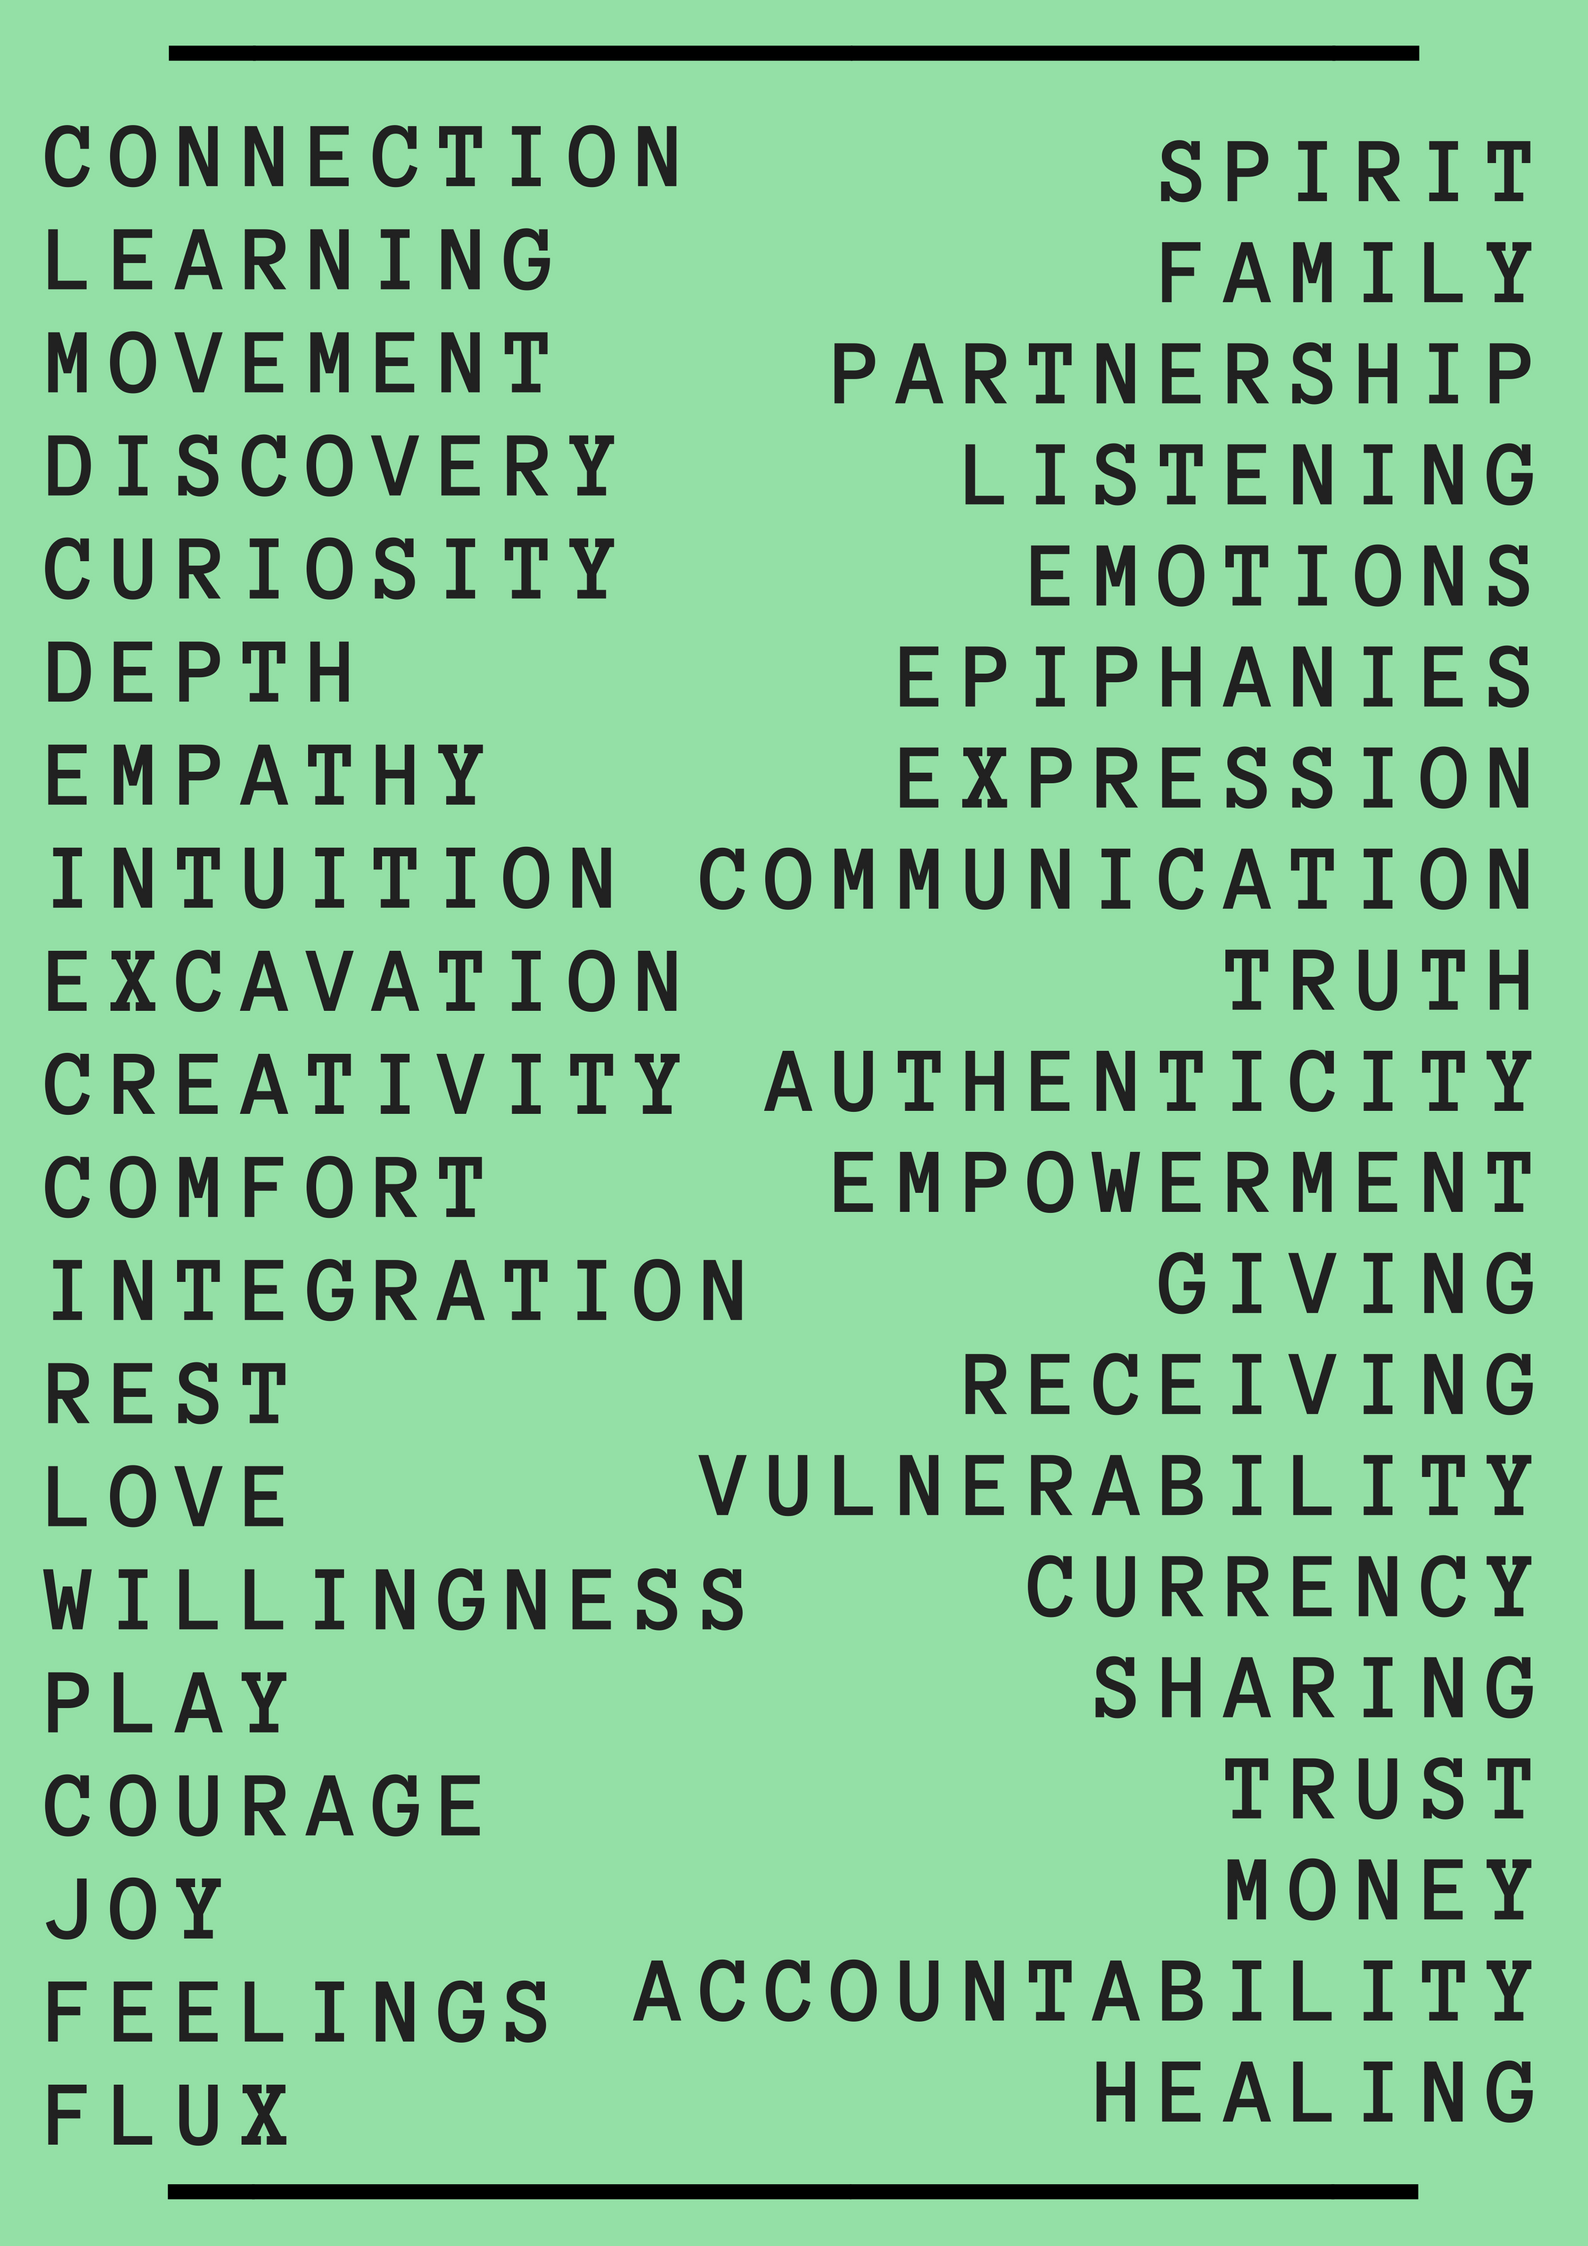 My non-exhaustive list of values, 2018